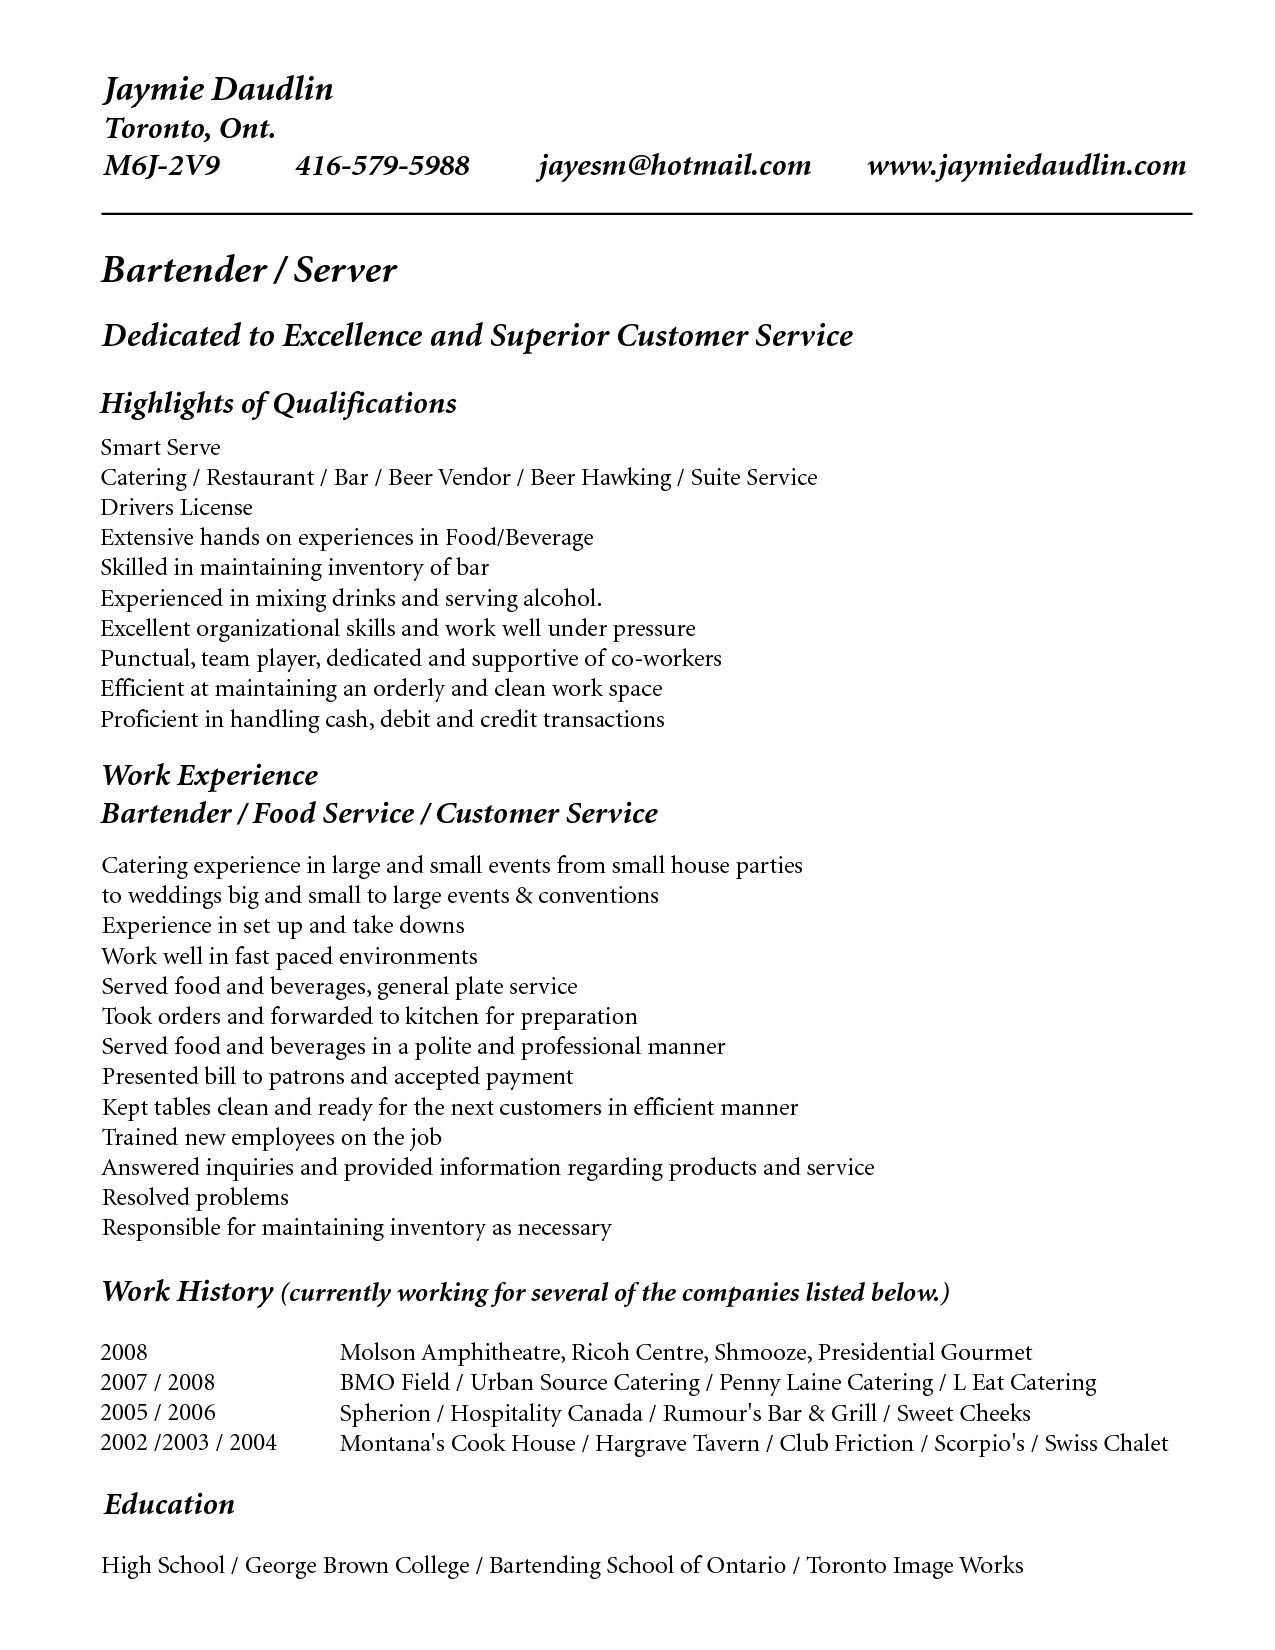 Resume Objective For Bartender